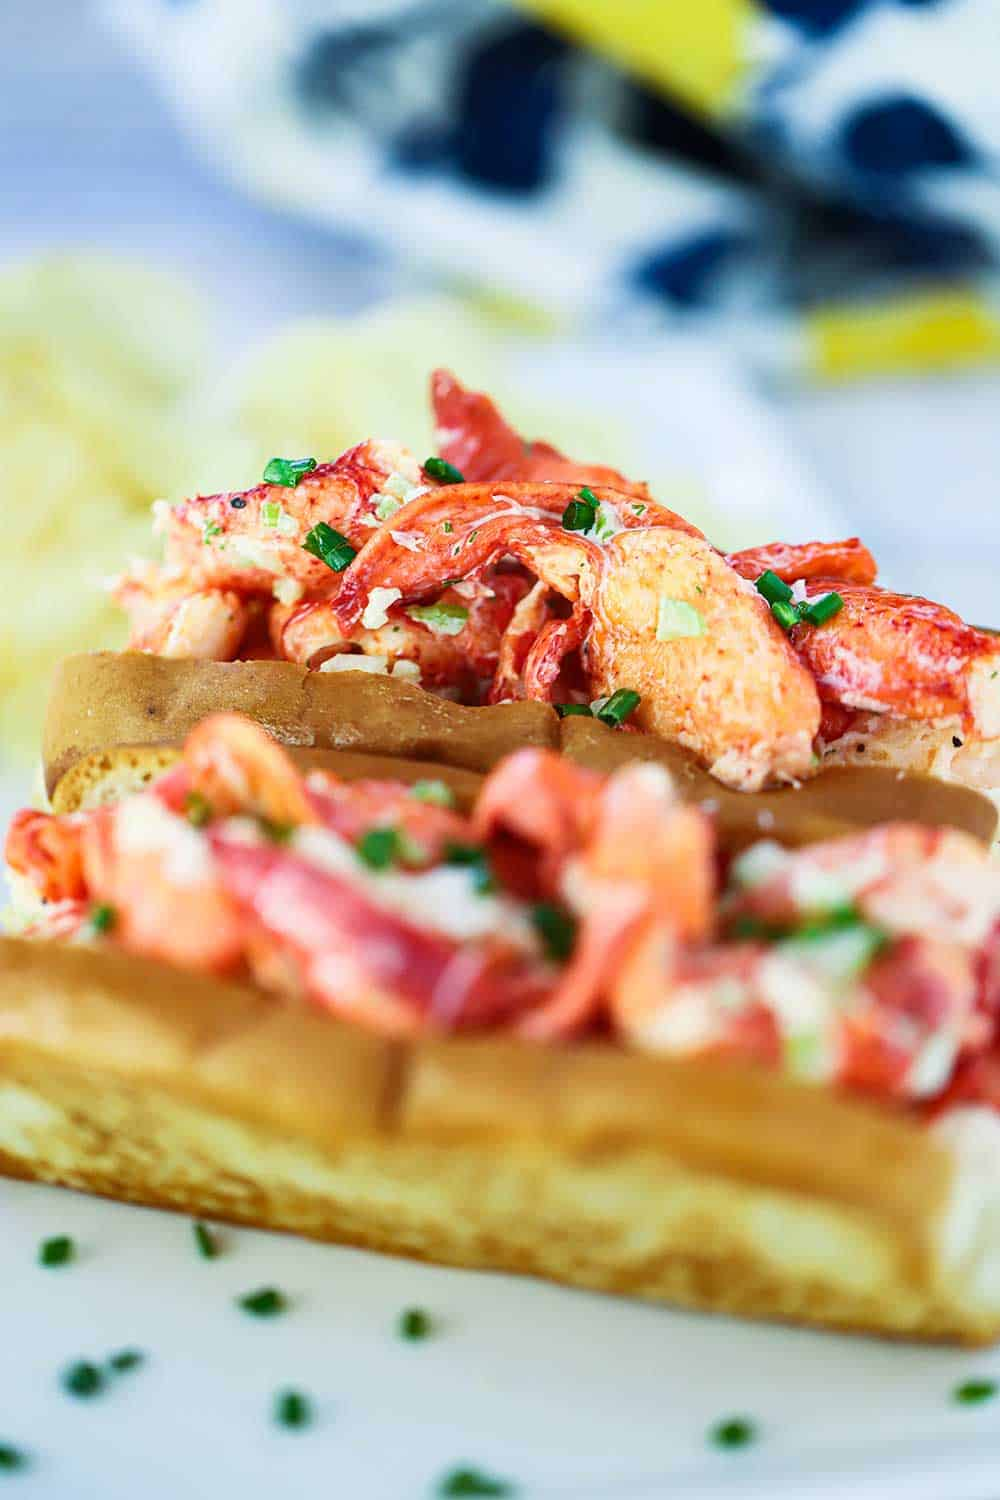 A close-up side view of two lobster rolls on toasted buns with snipped chives sprinkled over the tops.